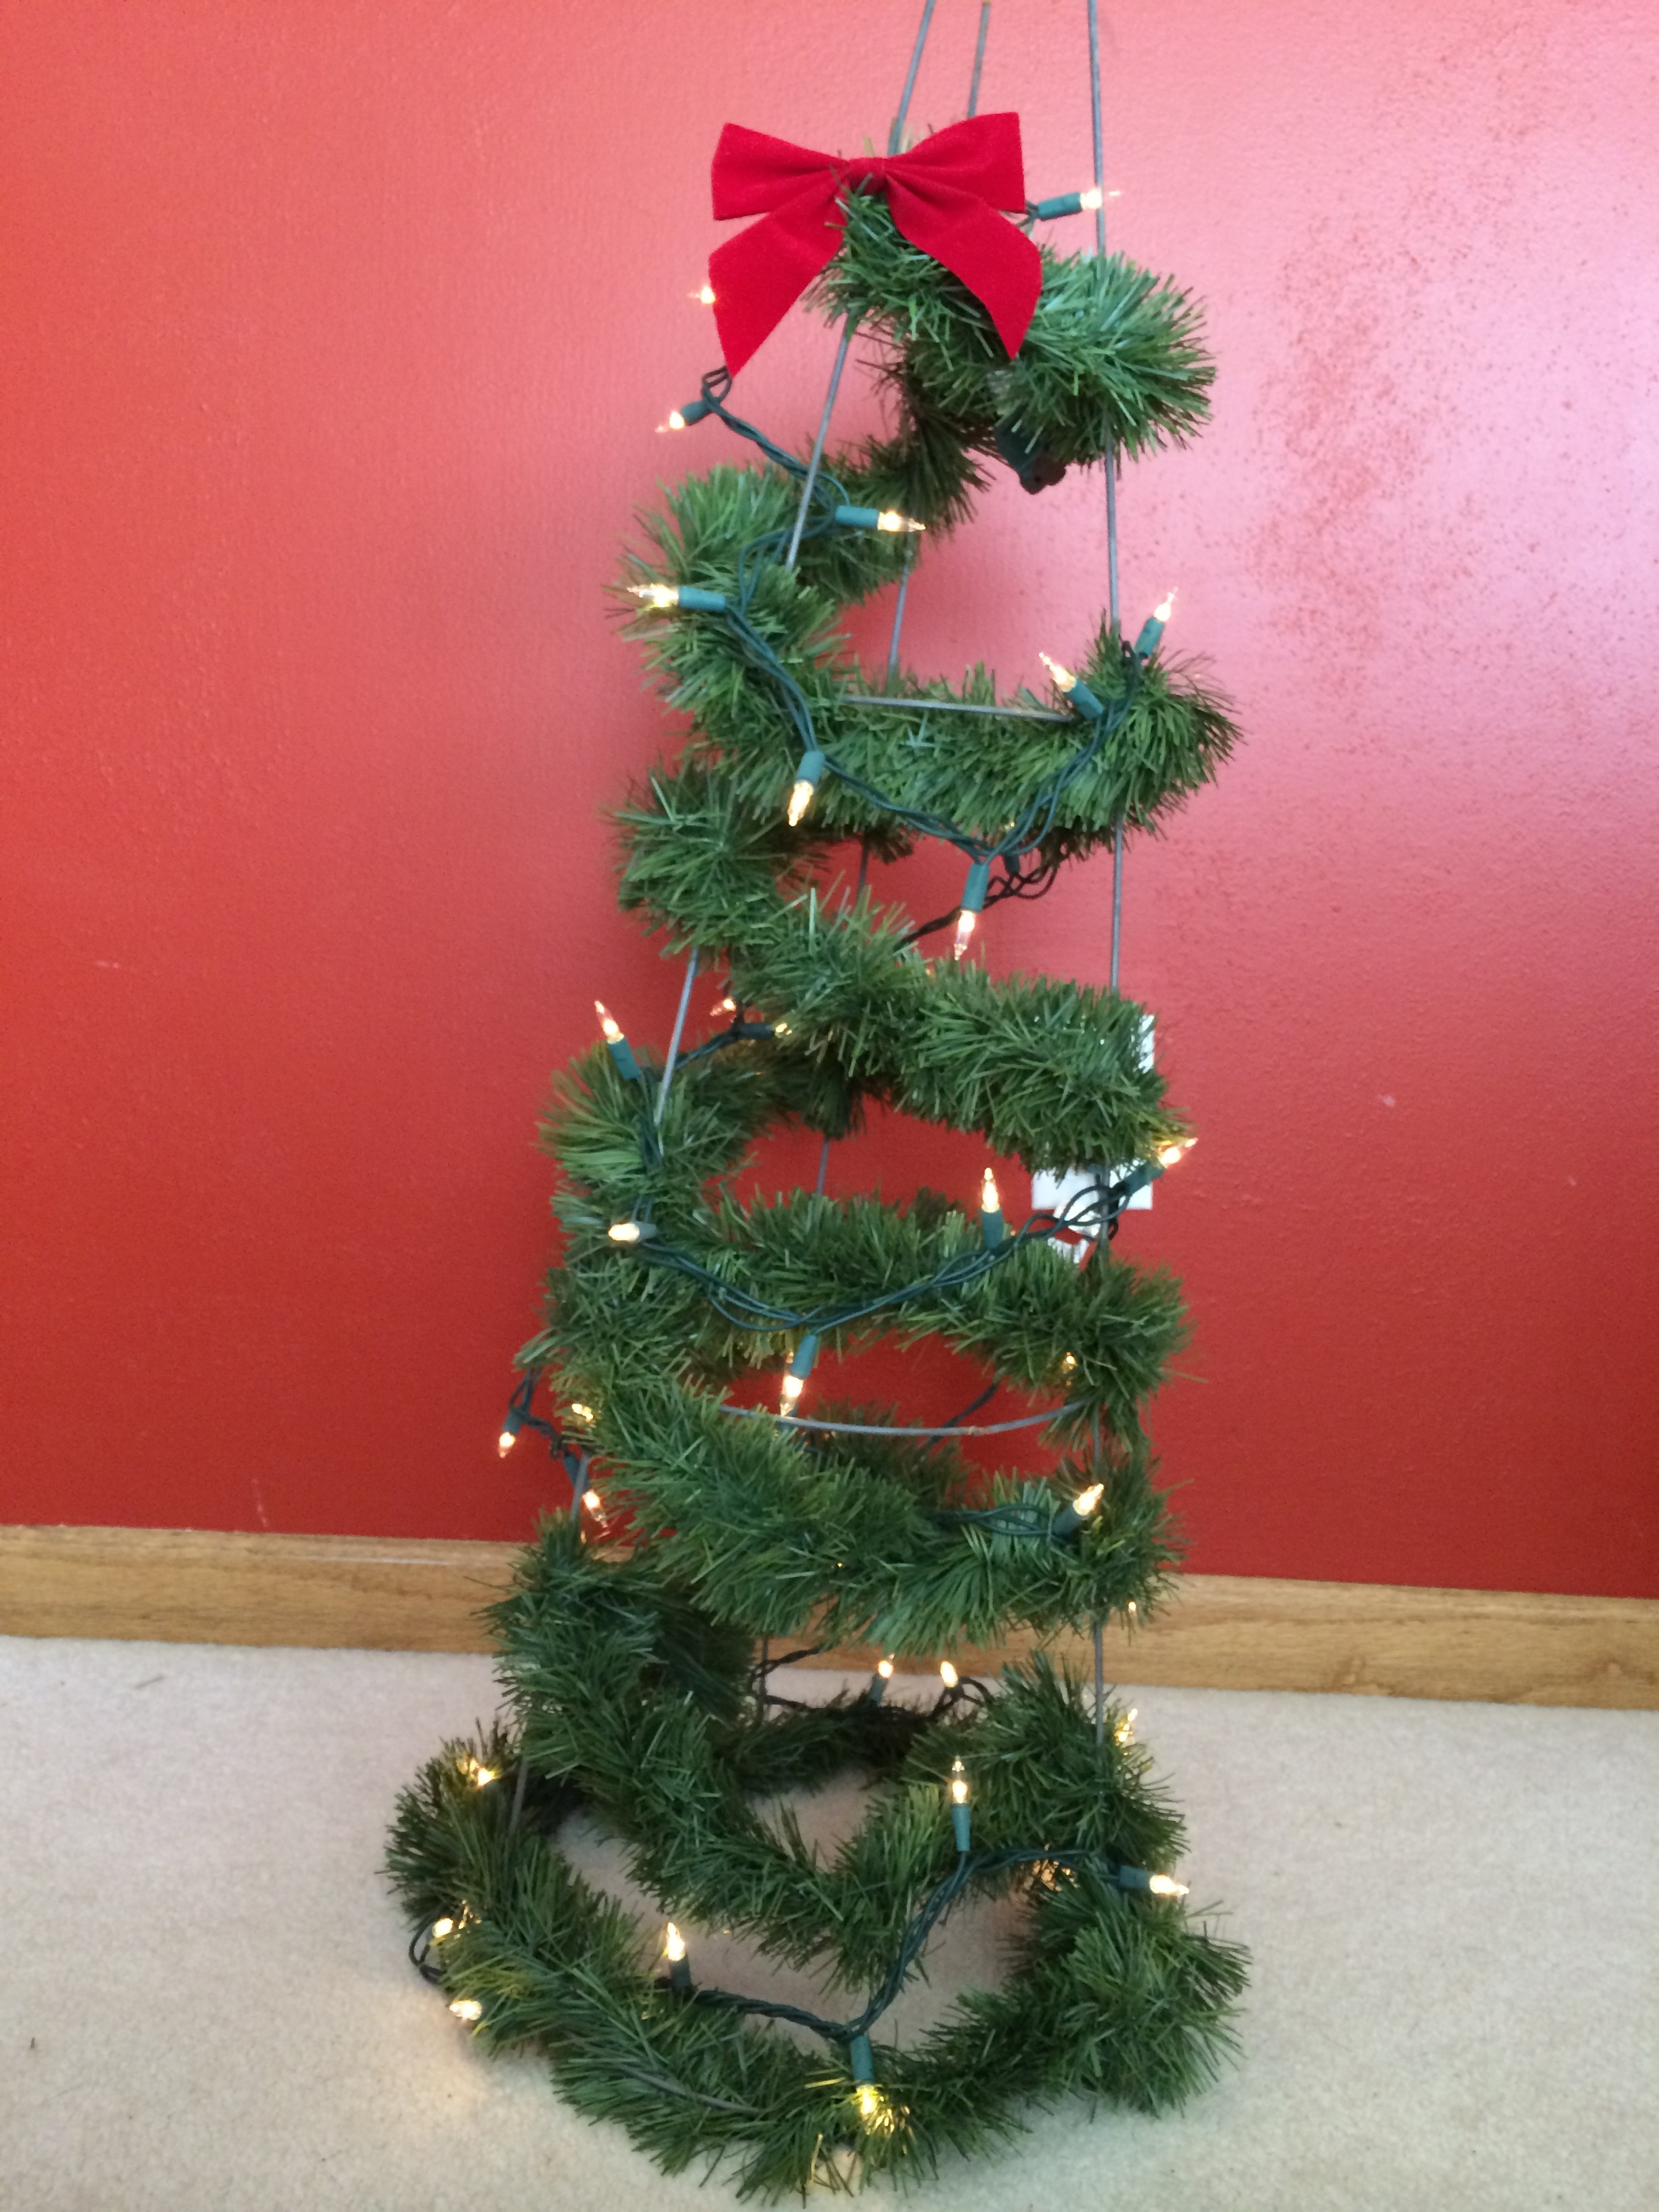 Tomato Cage Christmas Tree.Tomato Cage Christmas Tree Archives Meanderings In The Midwest